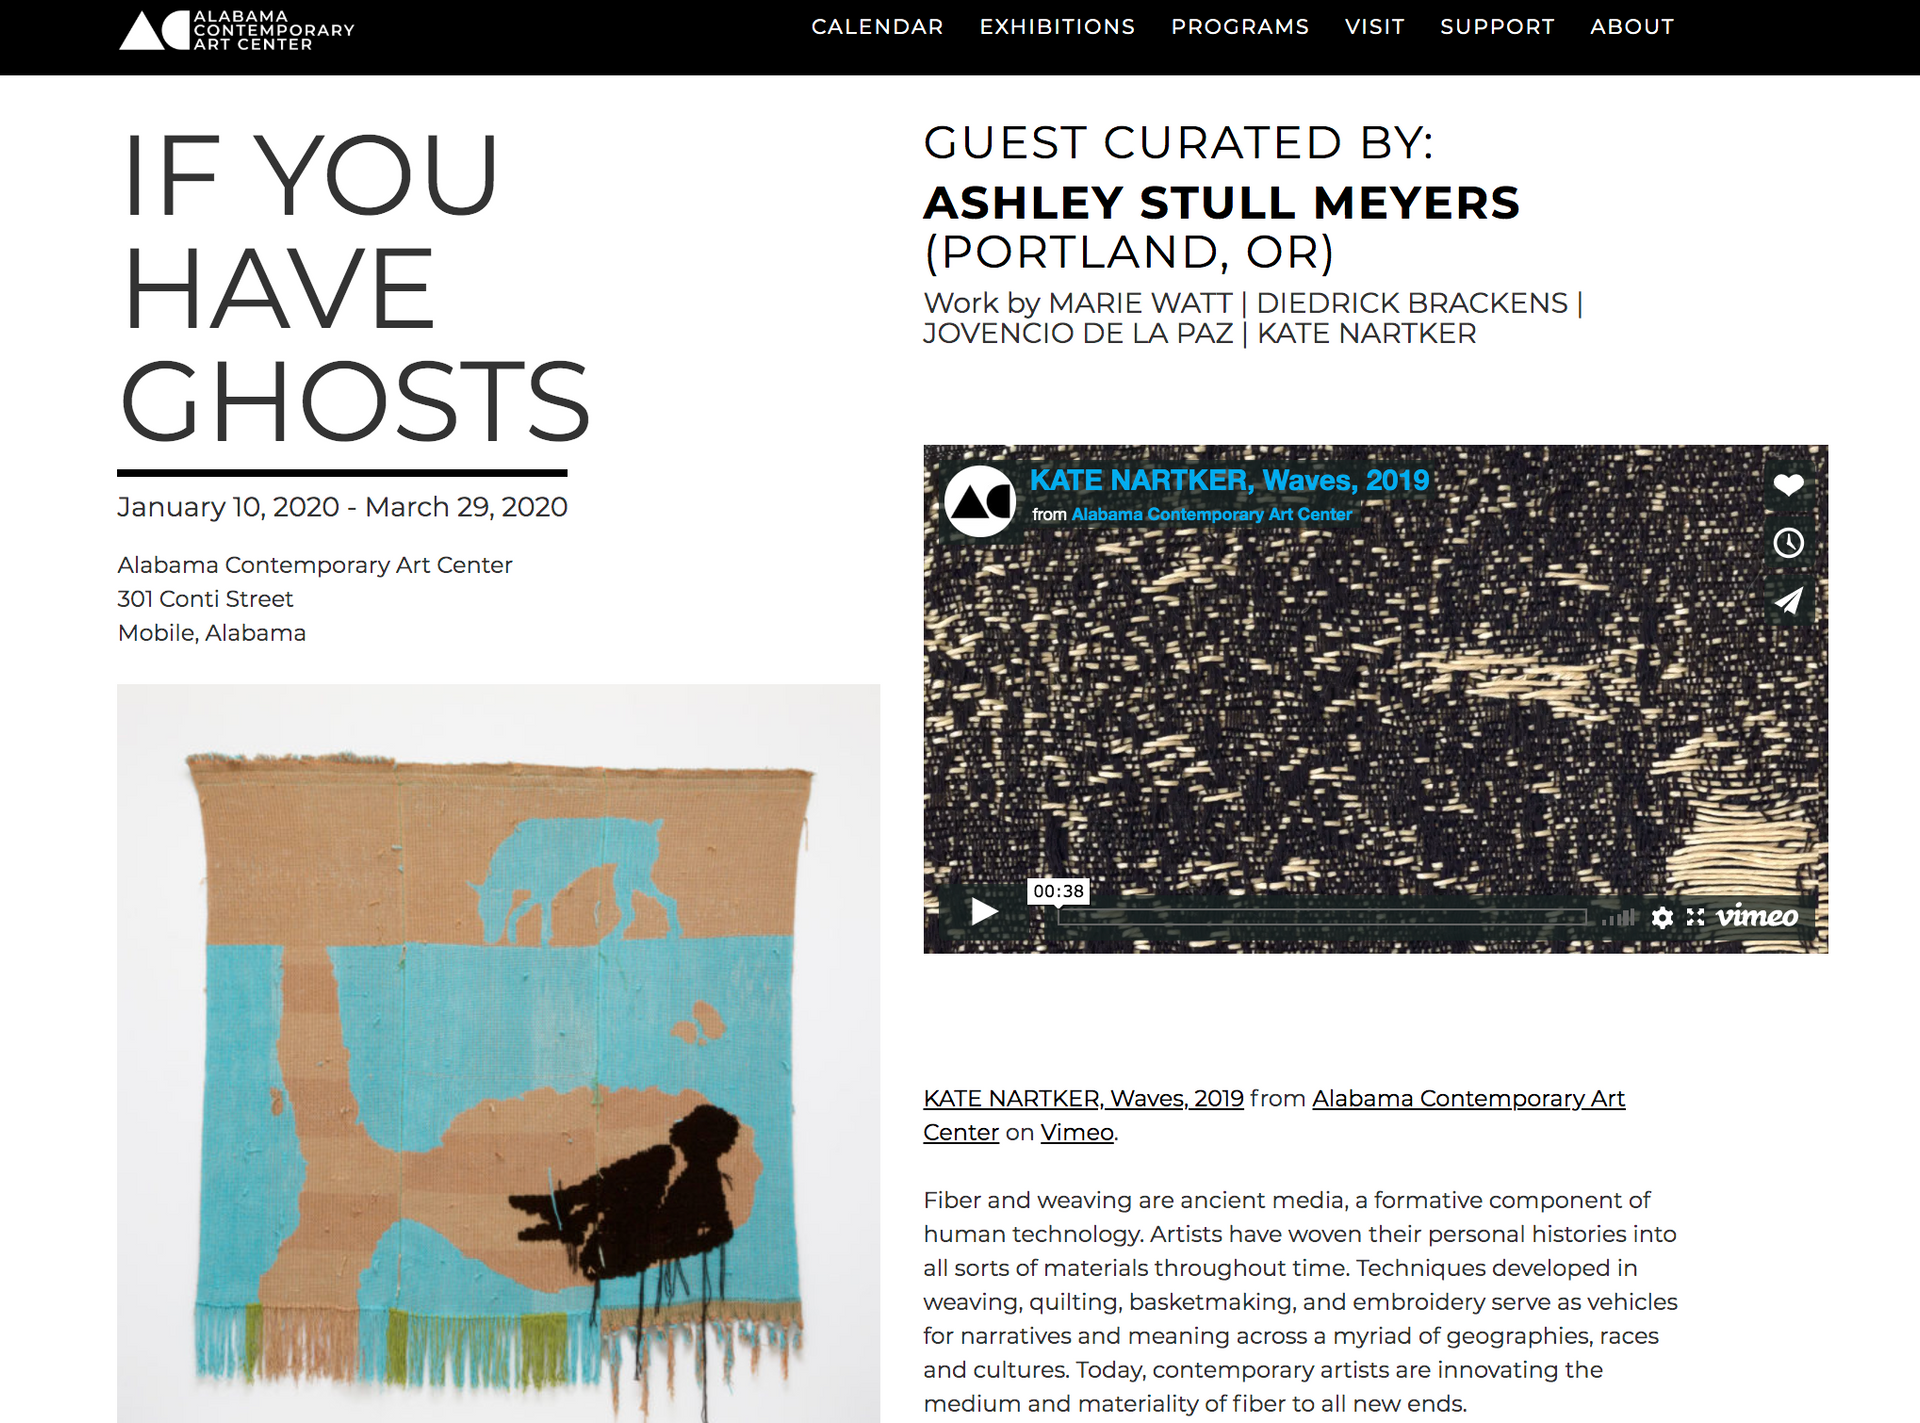 IF YOU HAVE GHOSTS opens January 10th at Alabama Contemporary